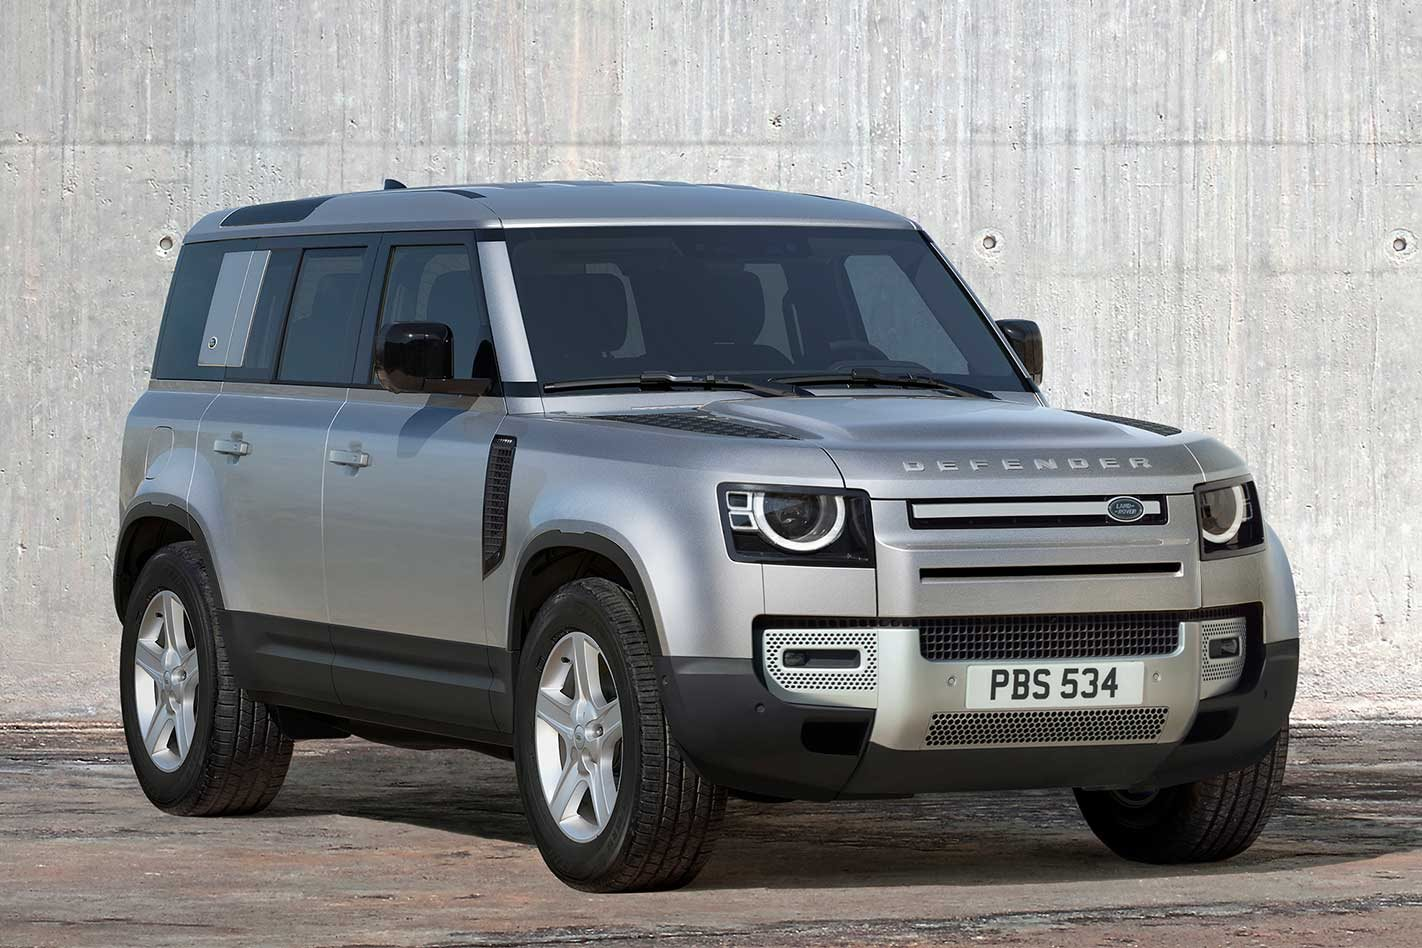 2020 Land Rover Defender: 50 Things You Need To Know